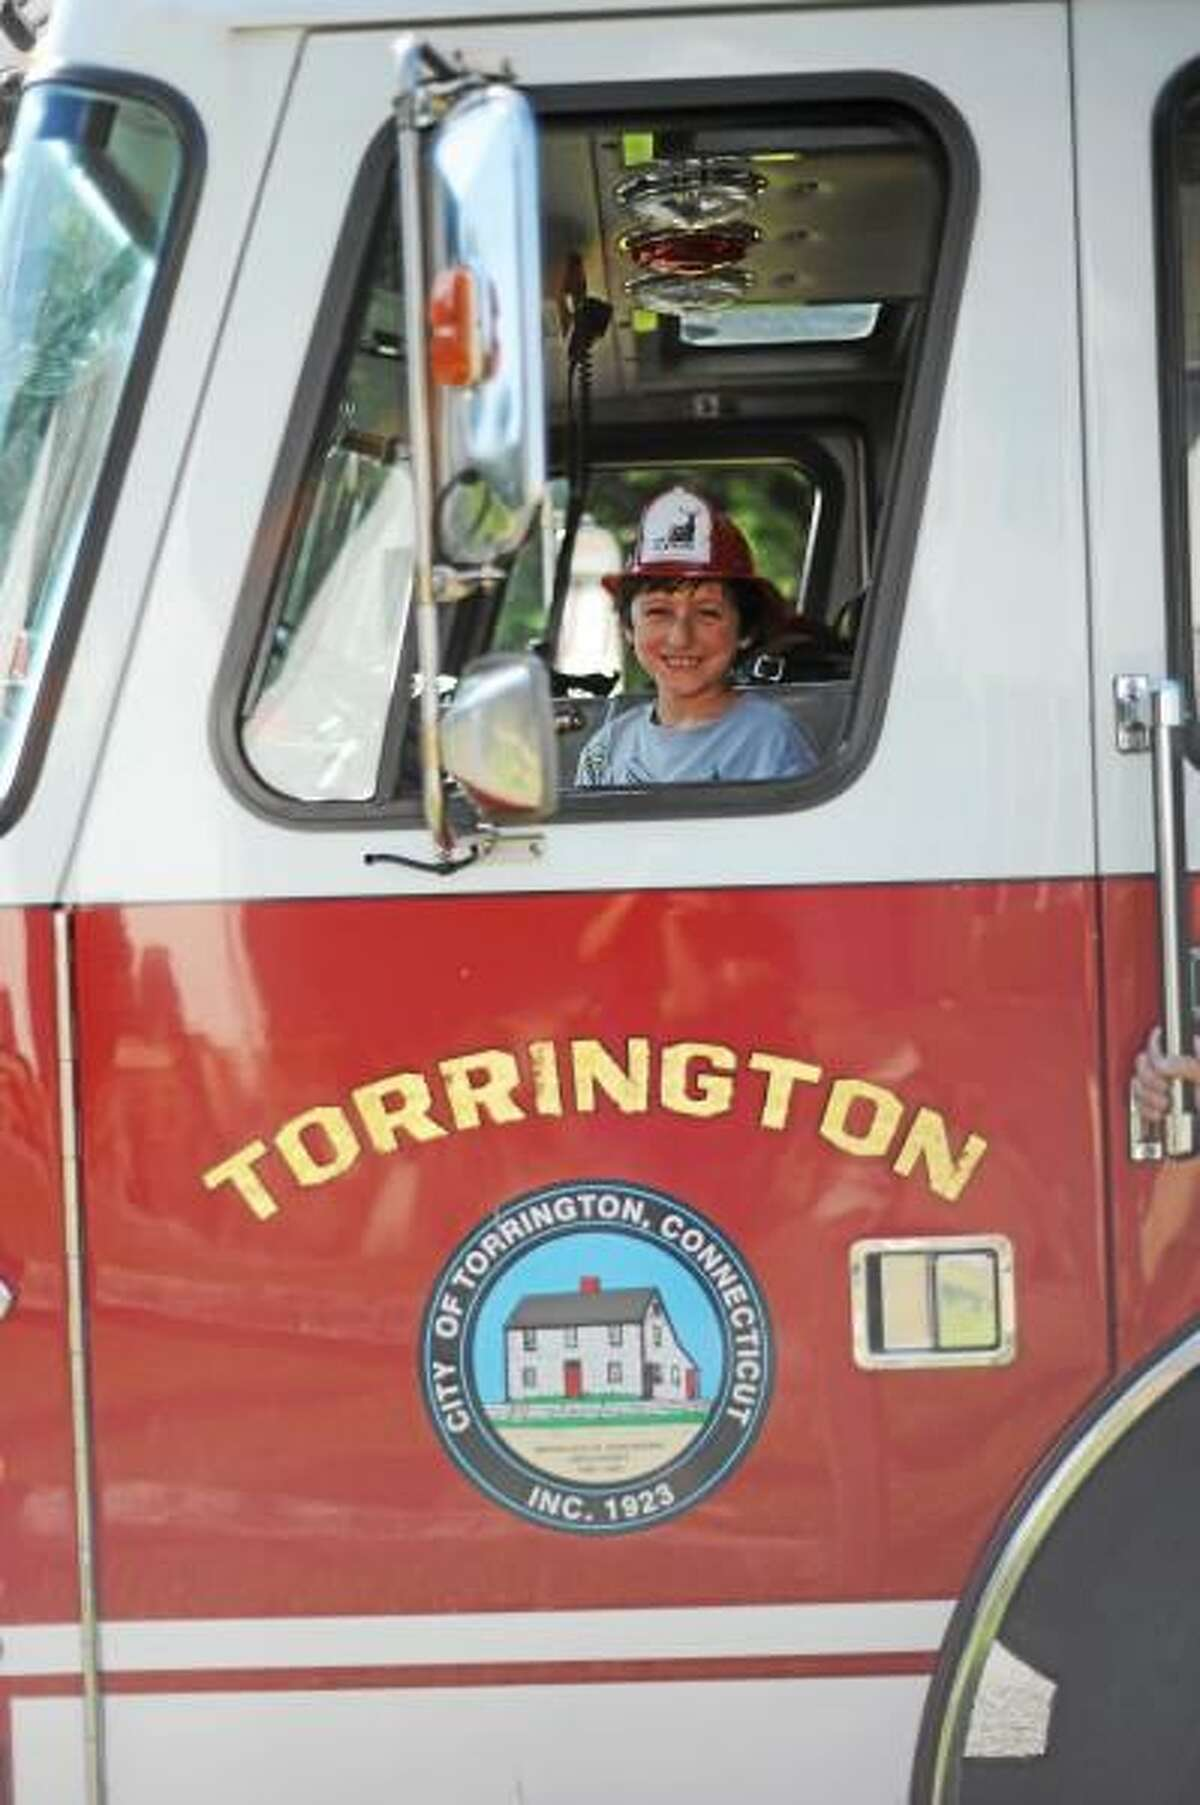 Tristan Ladonna sitting by the wheel of a Torrington Fire Truck. His parents were the winning bidders on a fire truck ride to school at the 2012 Toast to Technology P.T.O. fundrasier event. Ladonna opted to have his special ride to school on the second to last day of school. (Submitted photo courtesy of Rebakah Ladonna - Bekah Photography)